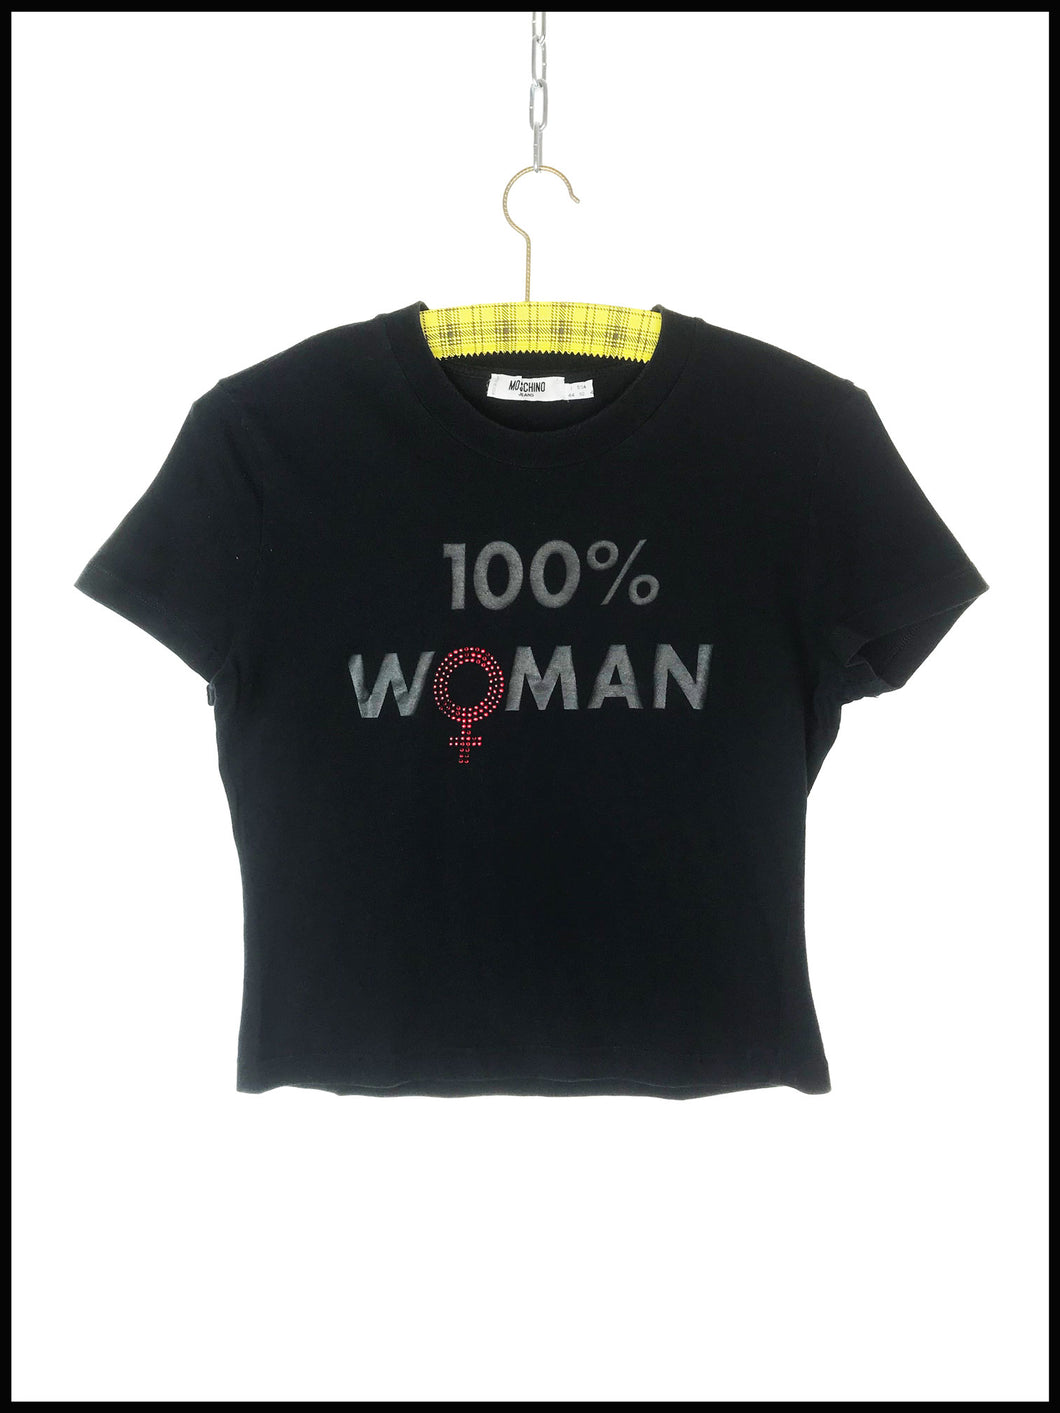 Crop Top Moschino Vintage 100% Woman